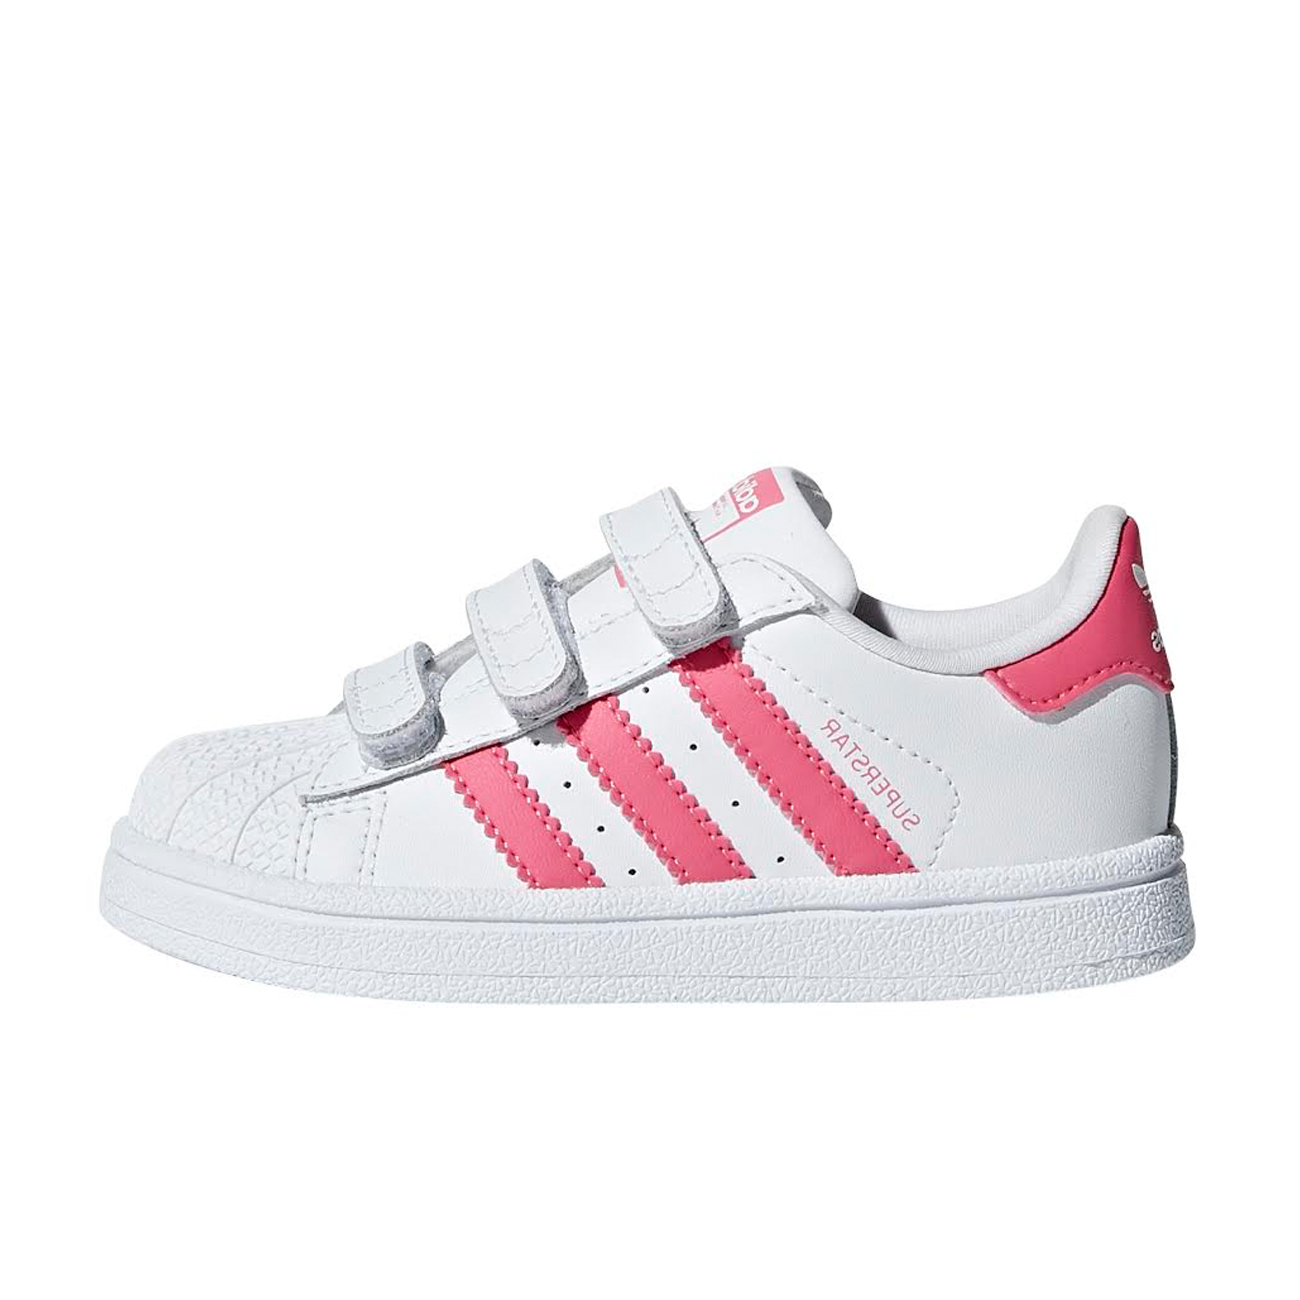 7d400092bad ΠΡΟΙΟΝΤΑ    NEW IN    ADIDAS SUPERSTAR SHOES FTWR WHITE   REAL PINK   REAL  PINK CG6638